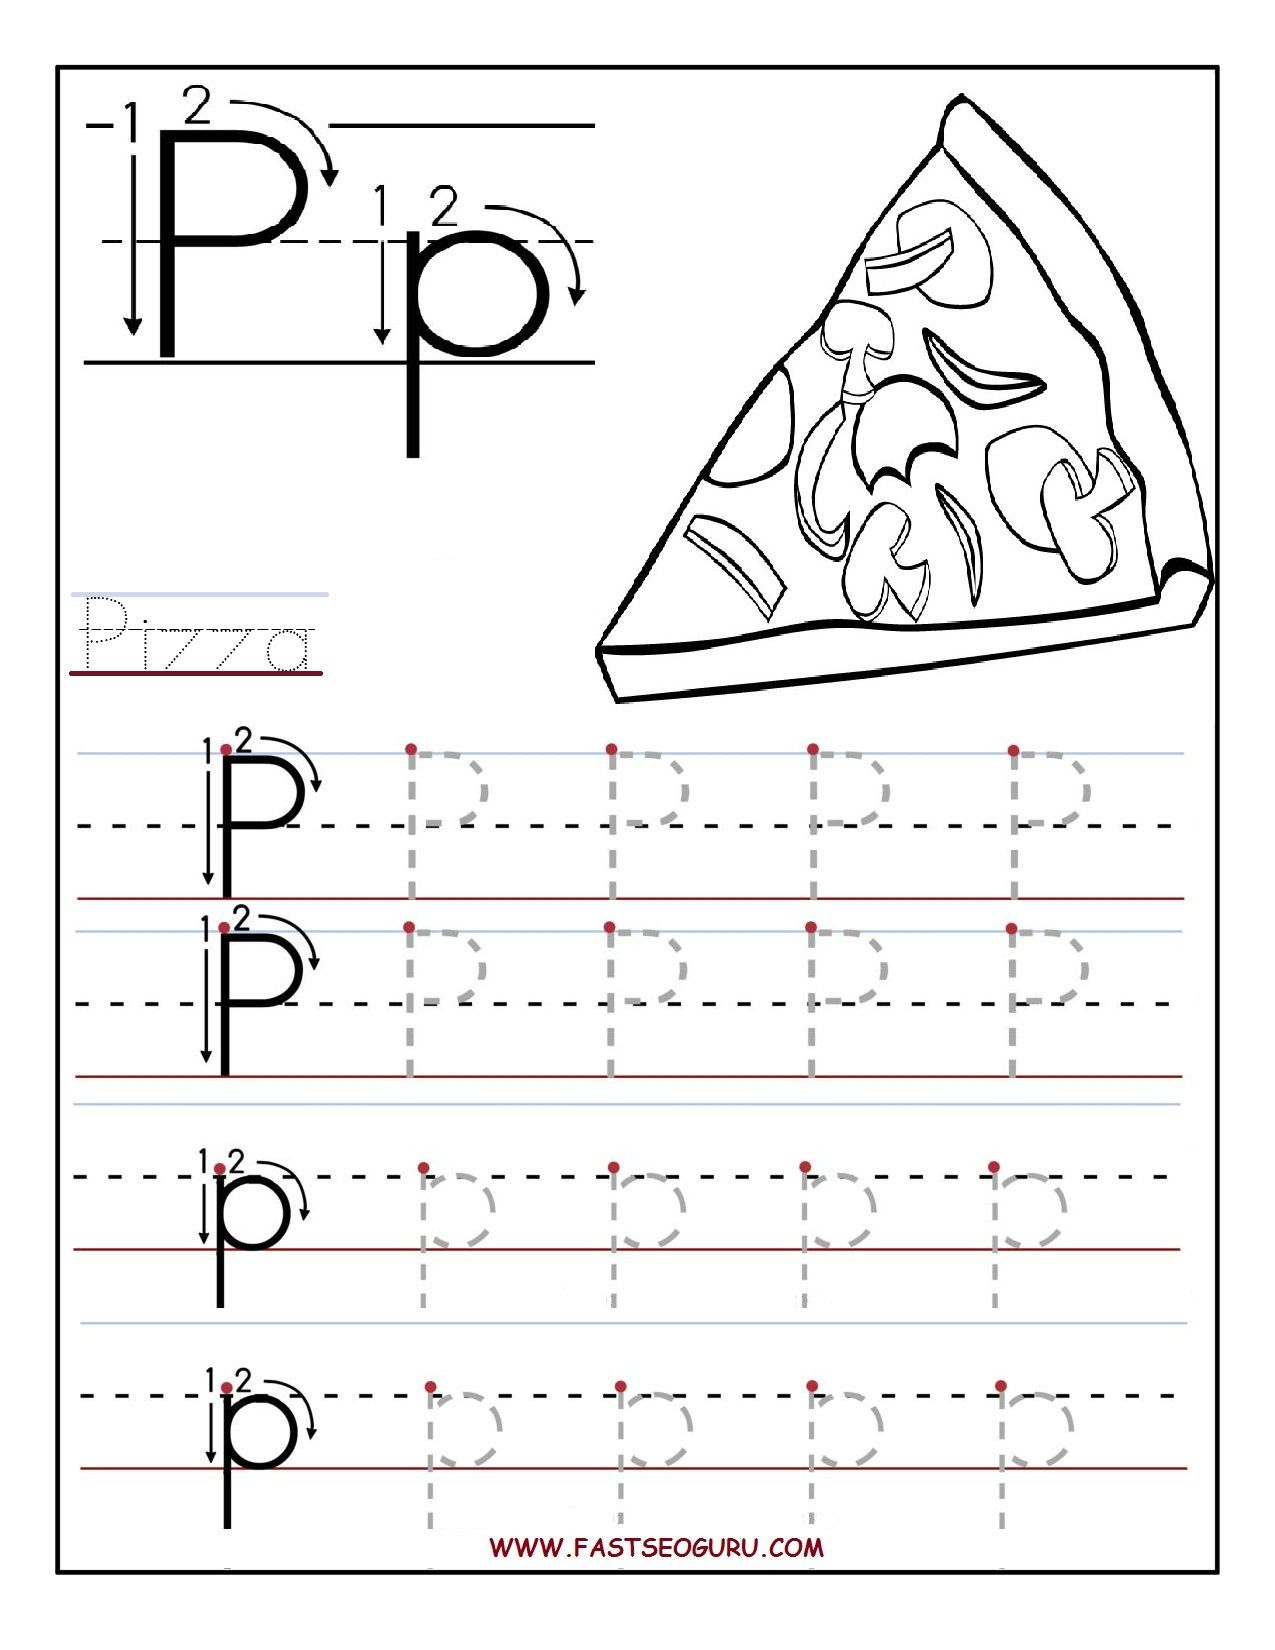 Printable Letter P Tracing Worksheets For Preschool intended for Letter P Tracing Worksheet